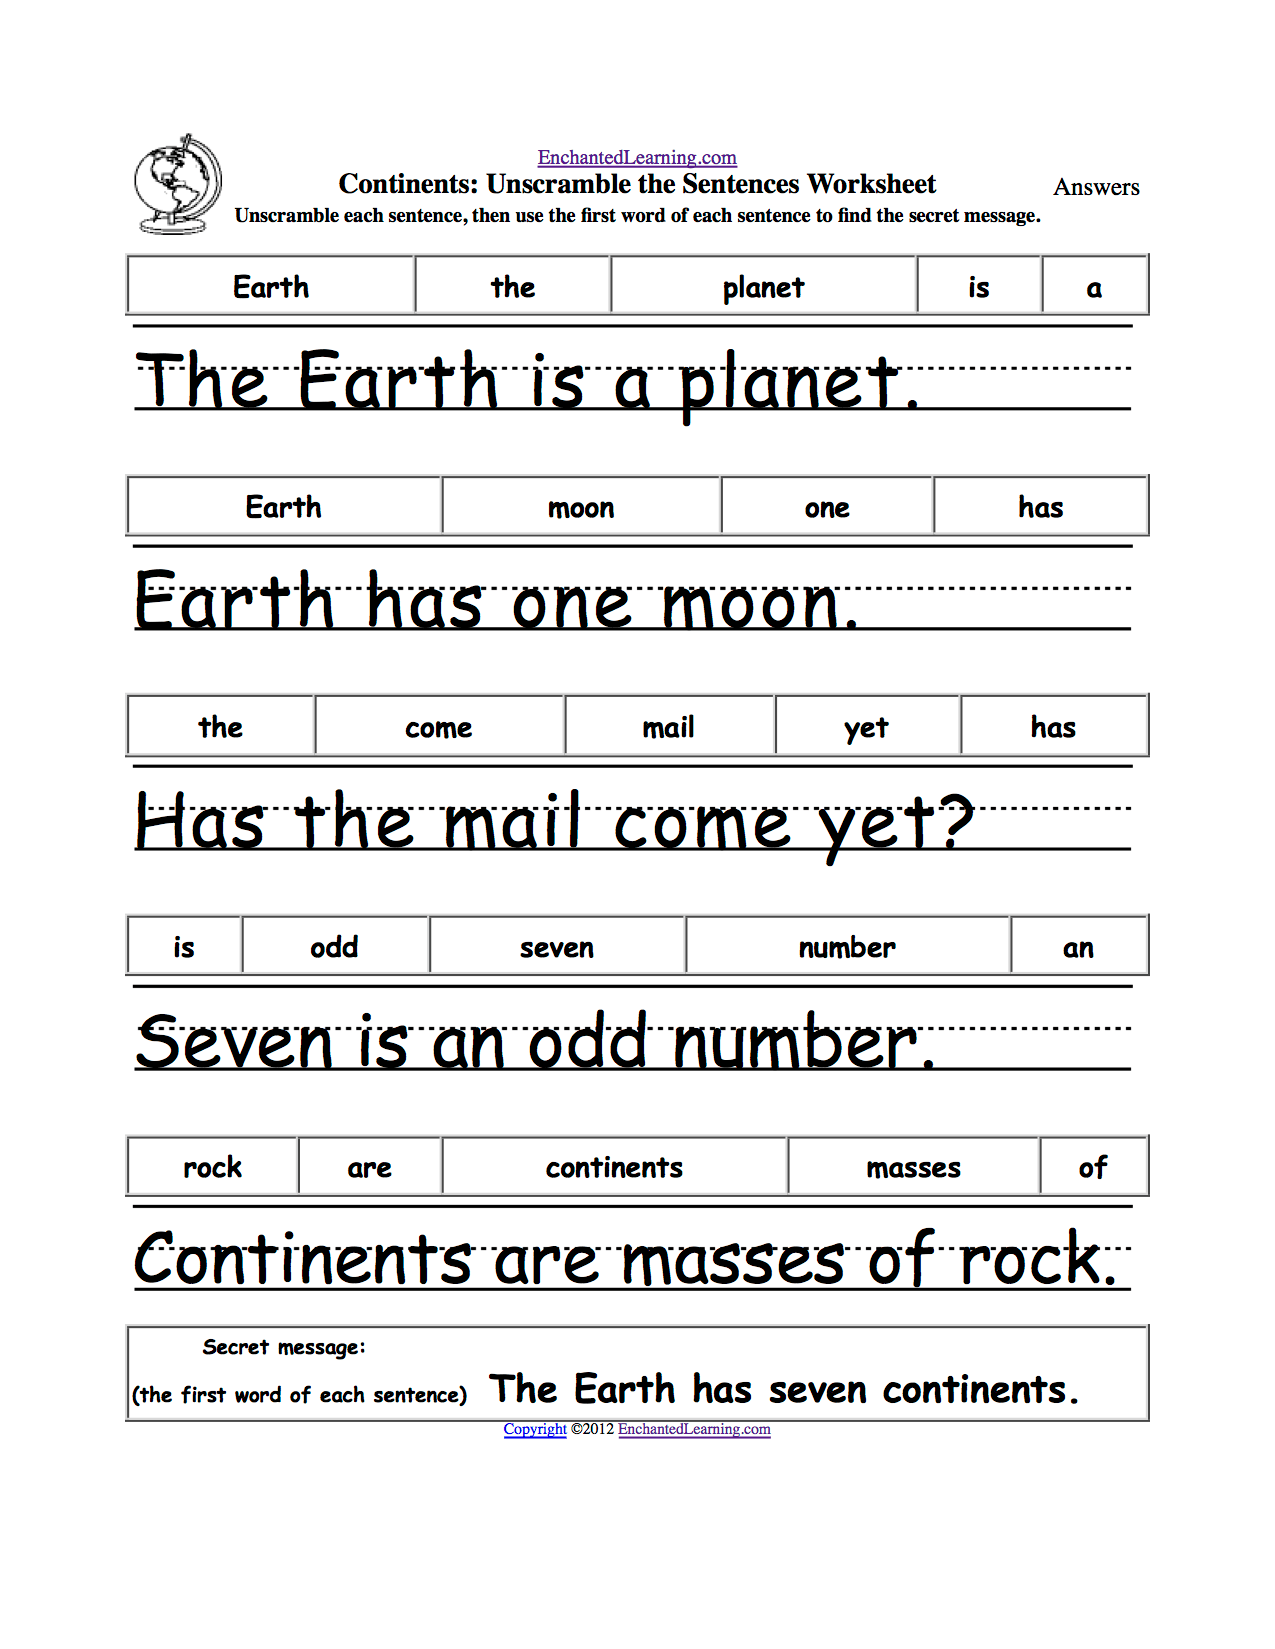 hight resolution of Unscramble the Sentences Worksheets - EnchantedLearning.com